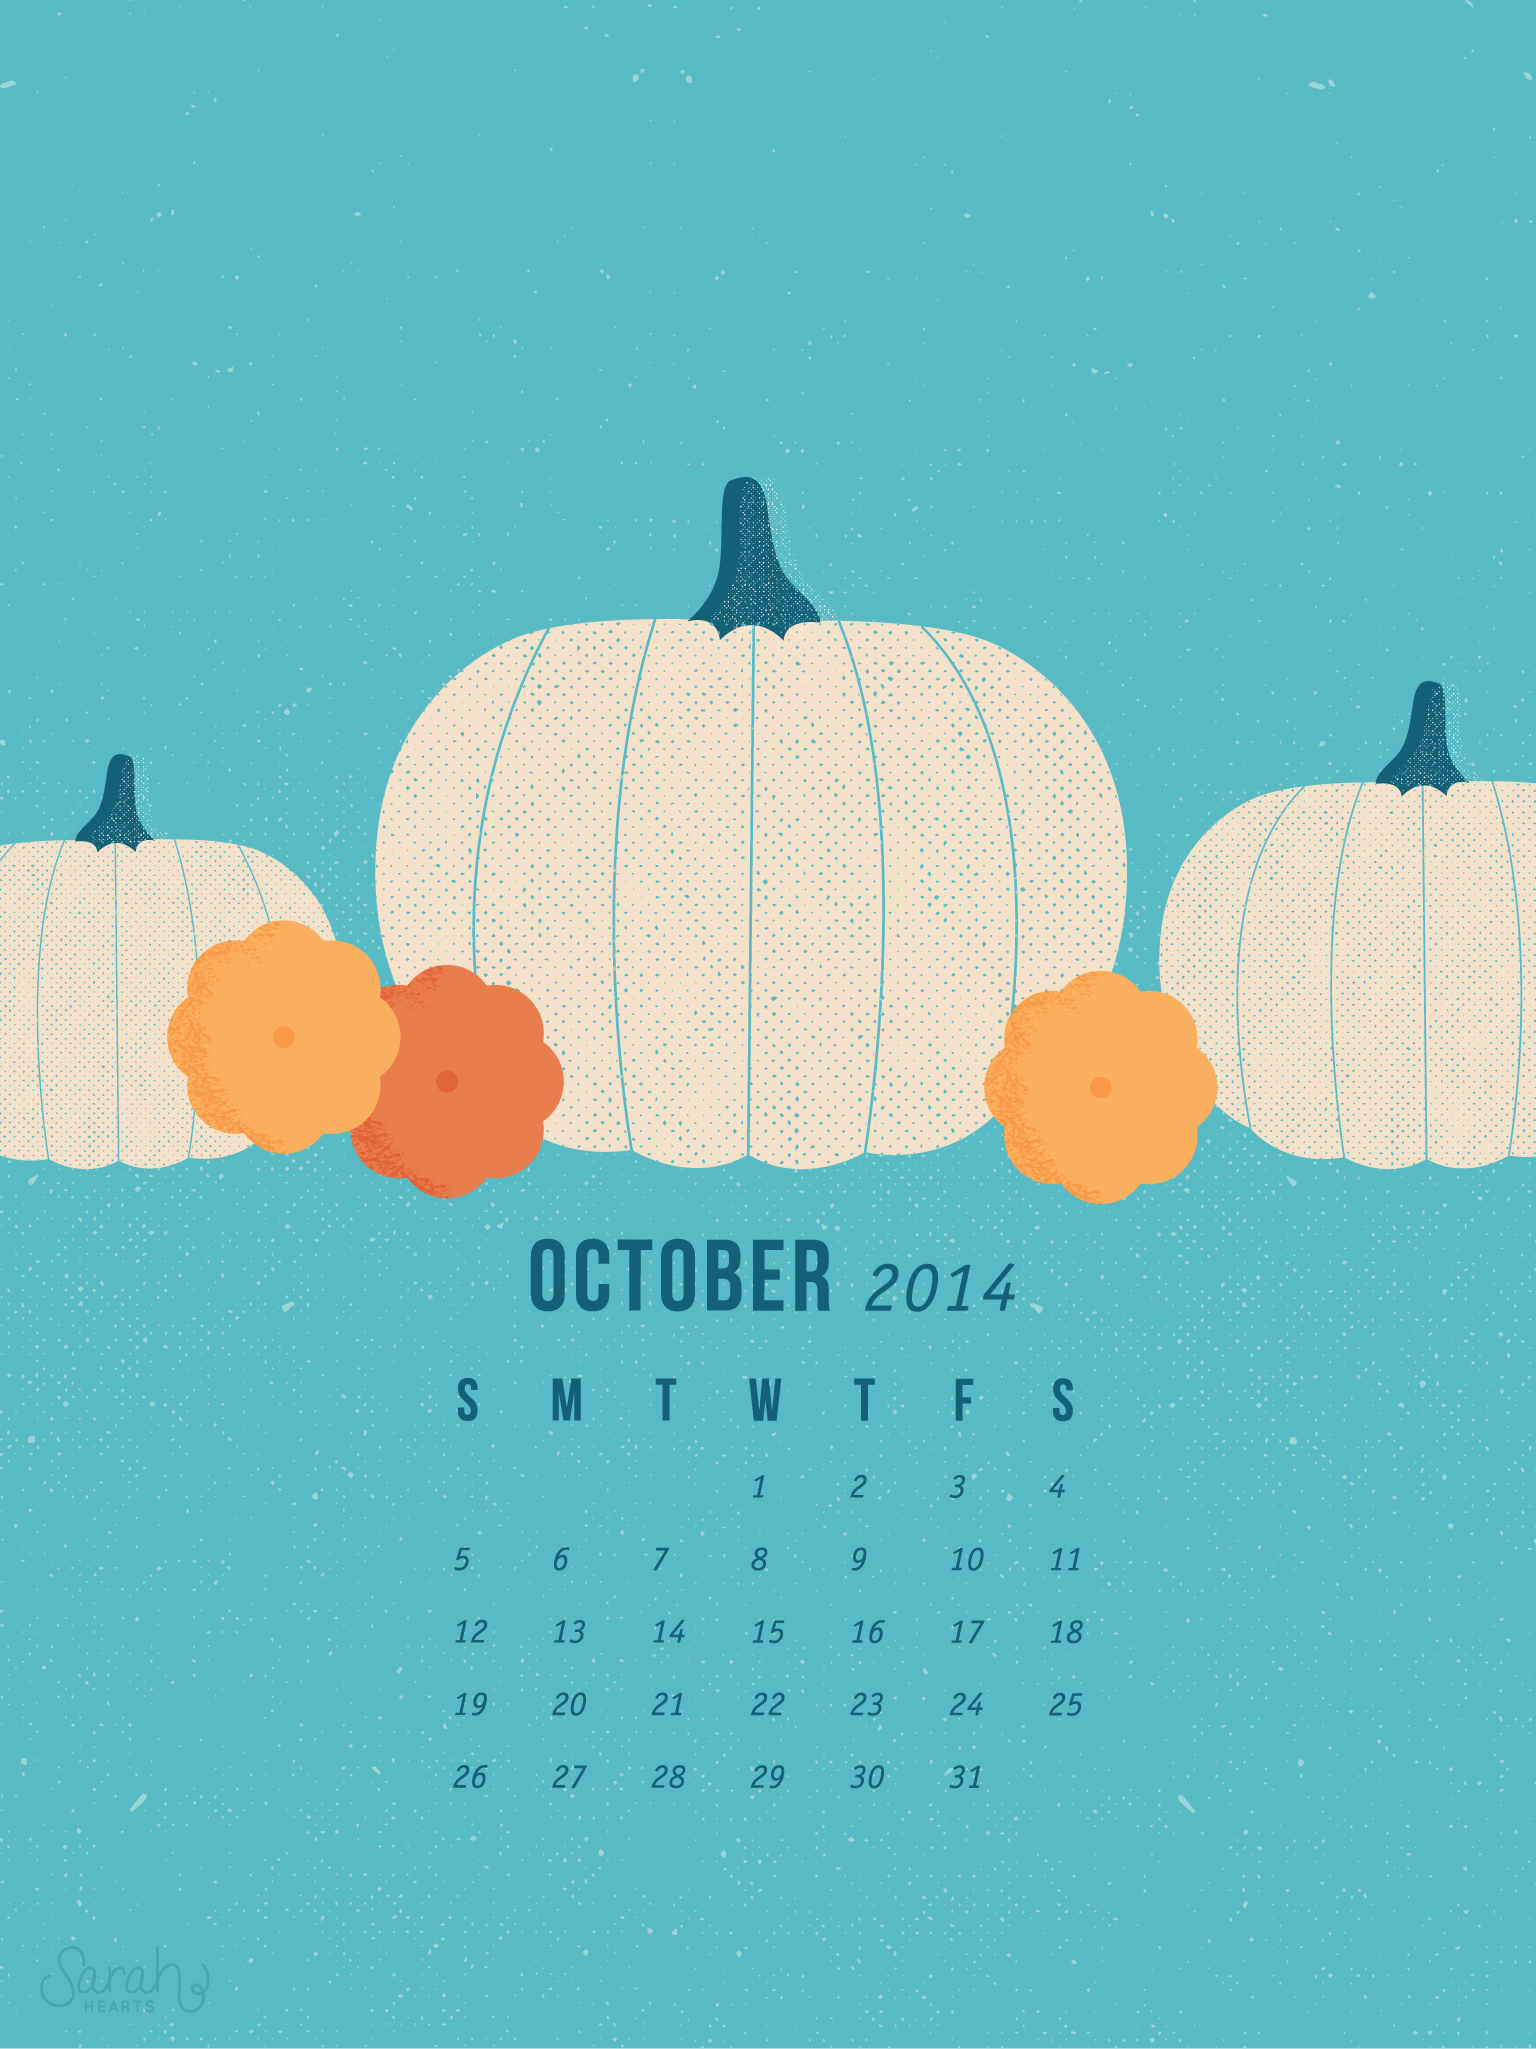 Free Cute Fall Wallpaper October 2014 Calendar Wallpapers Sarah Hearts